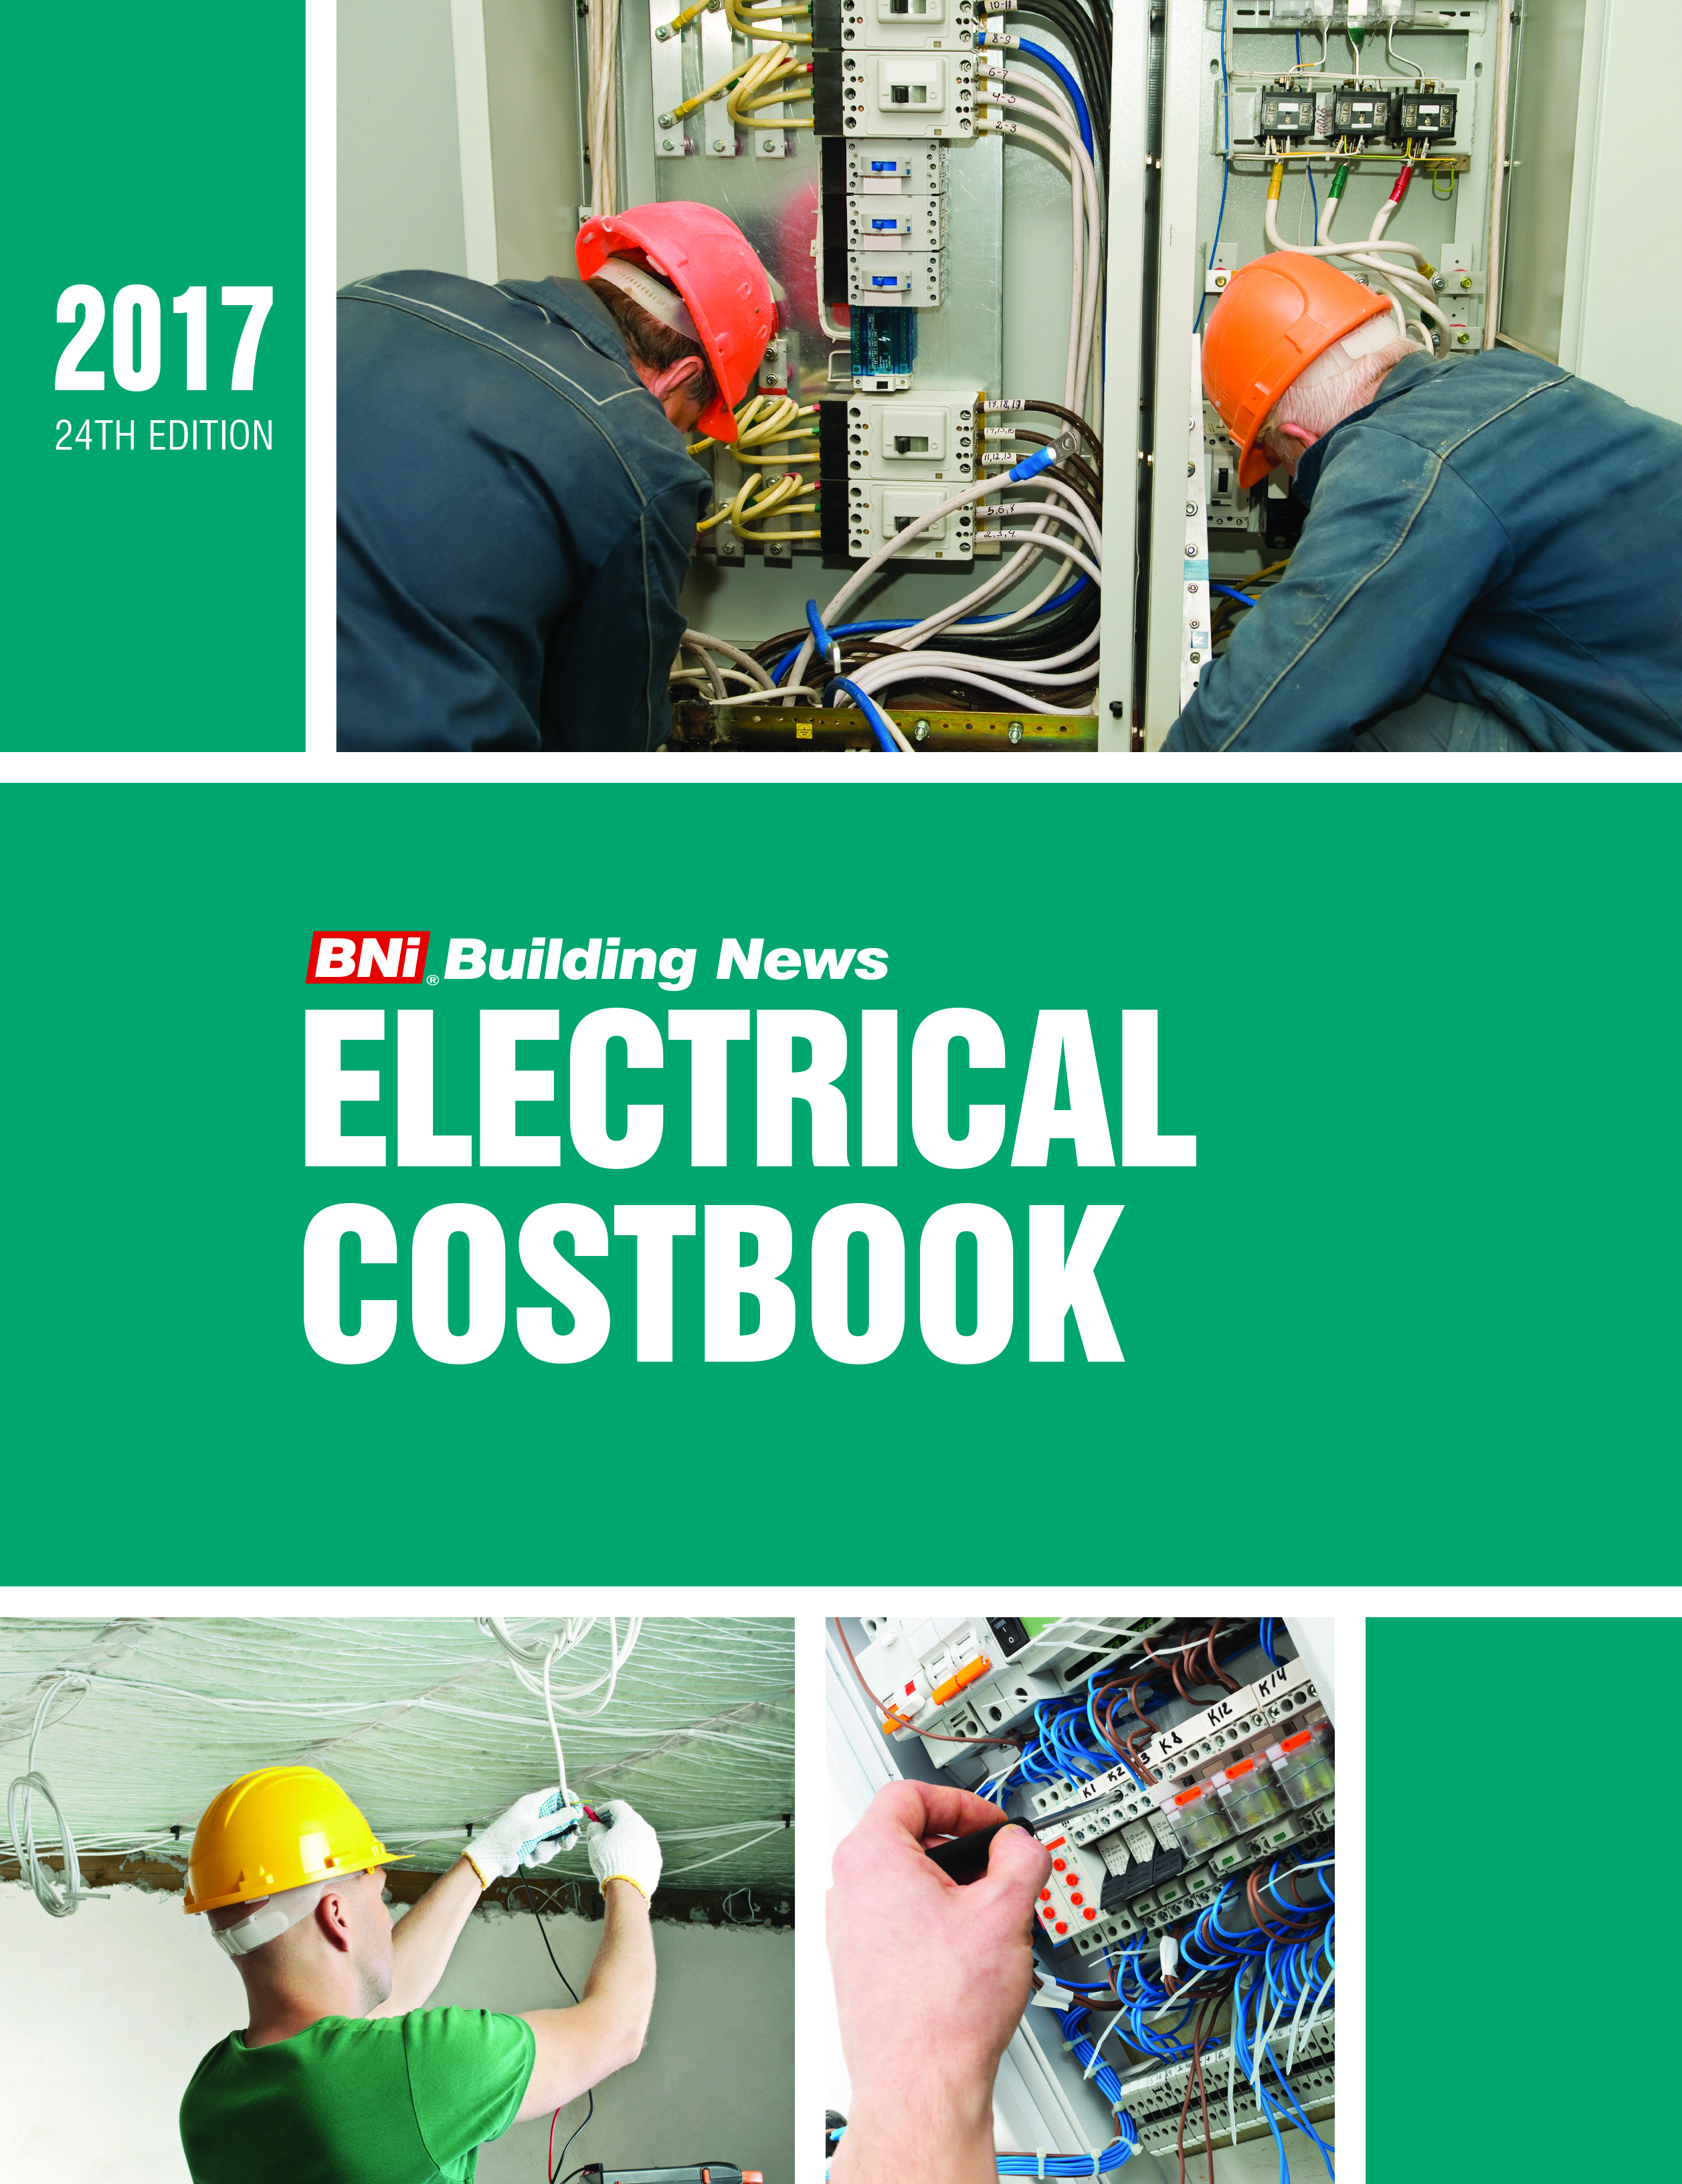 2017 BNI Electrical Costbook